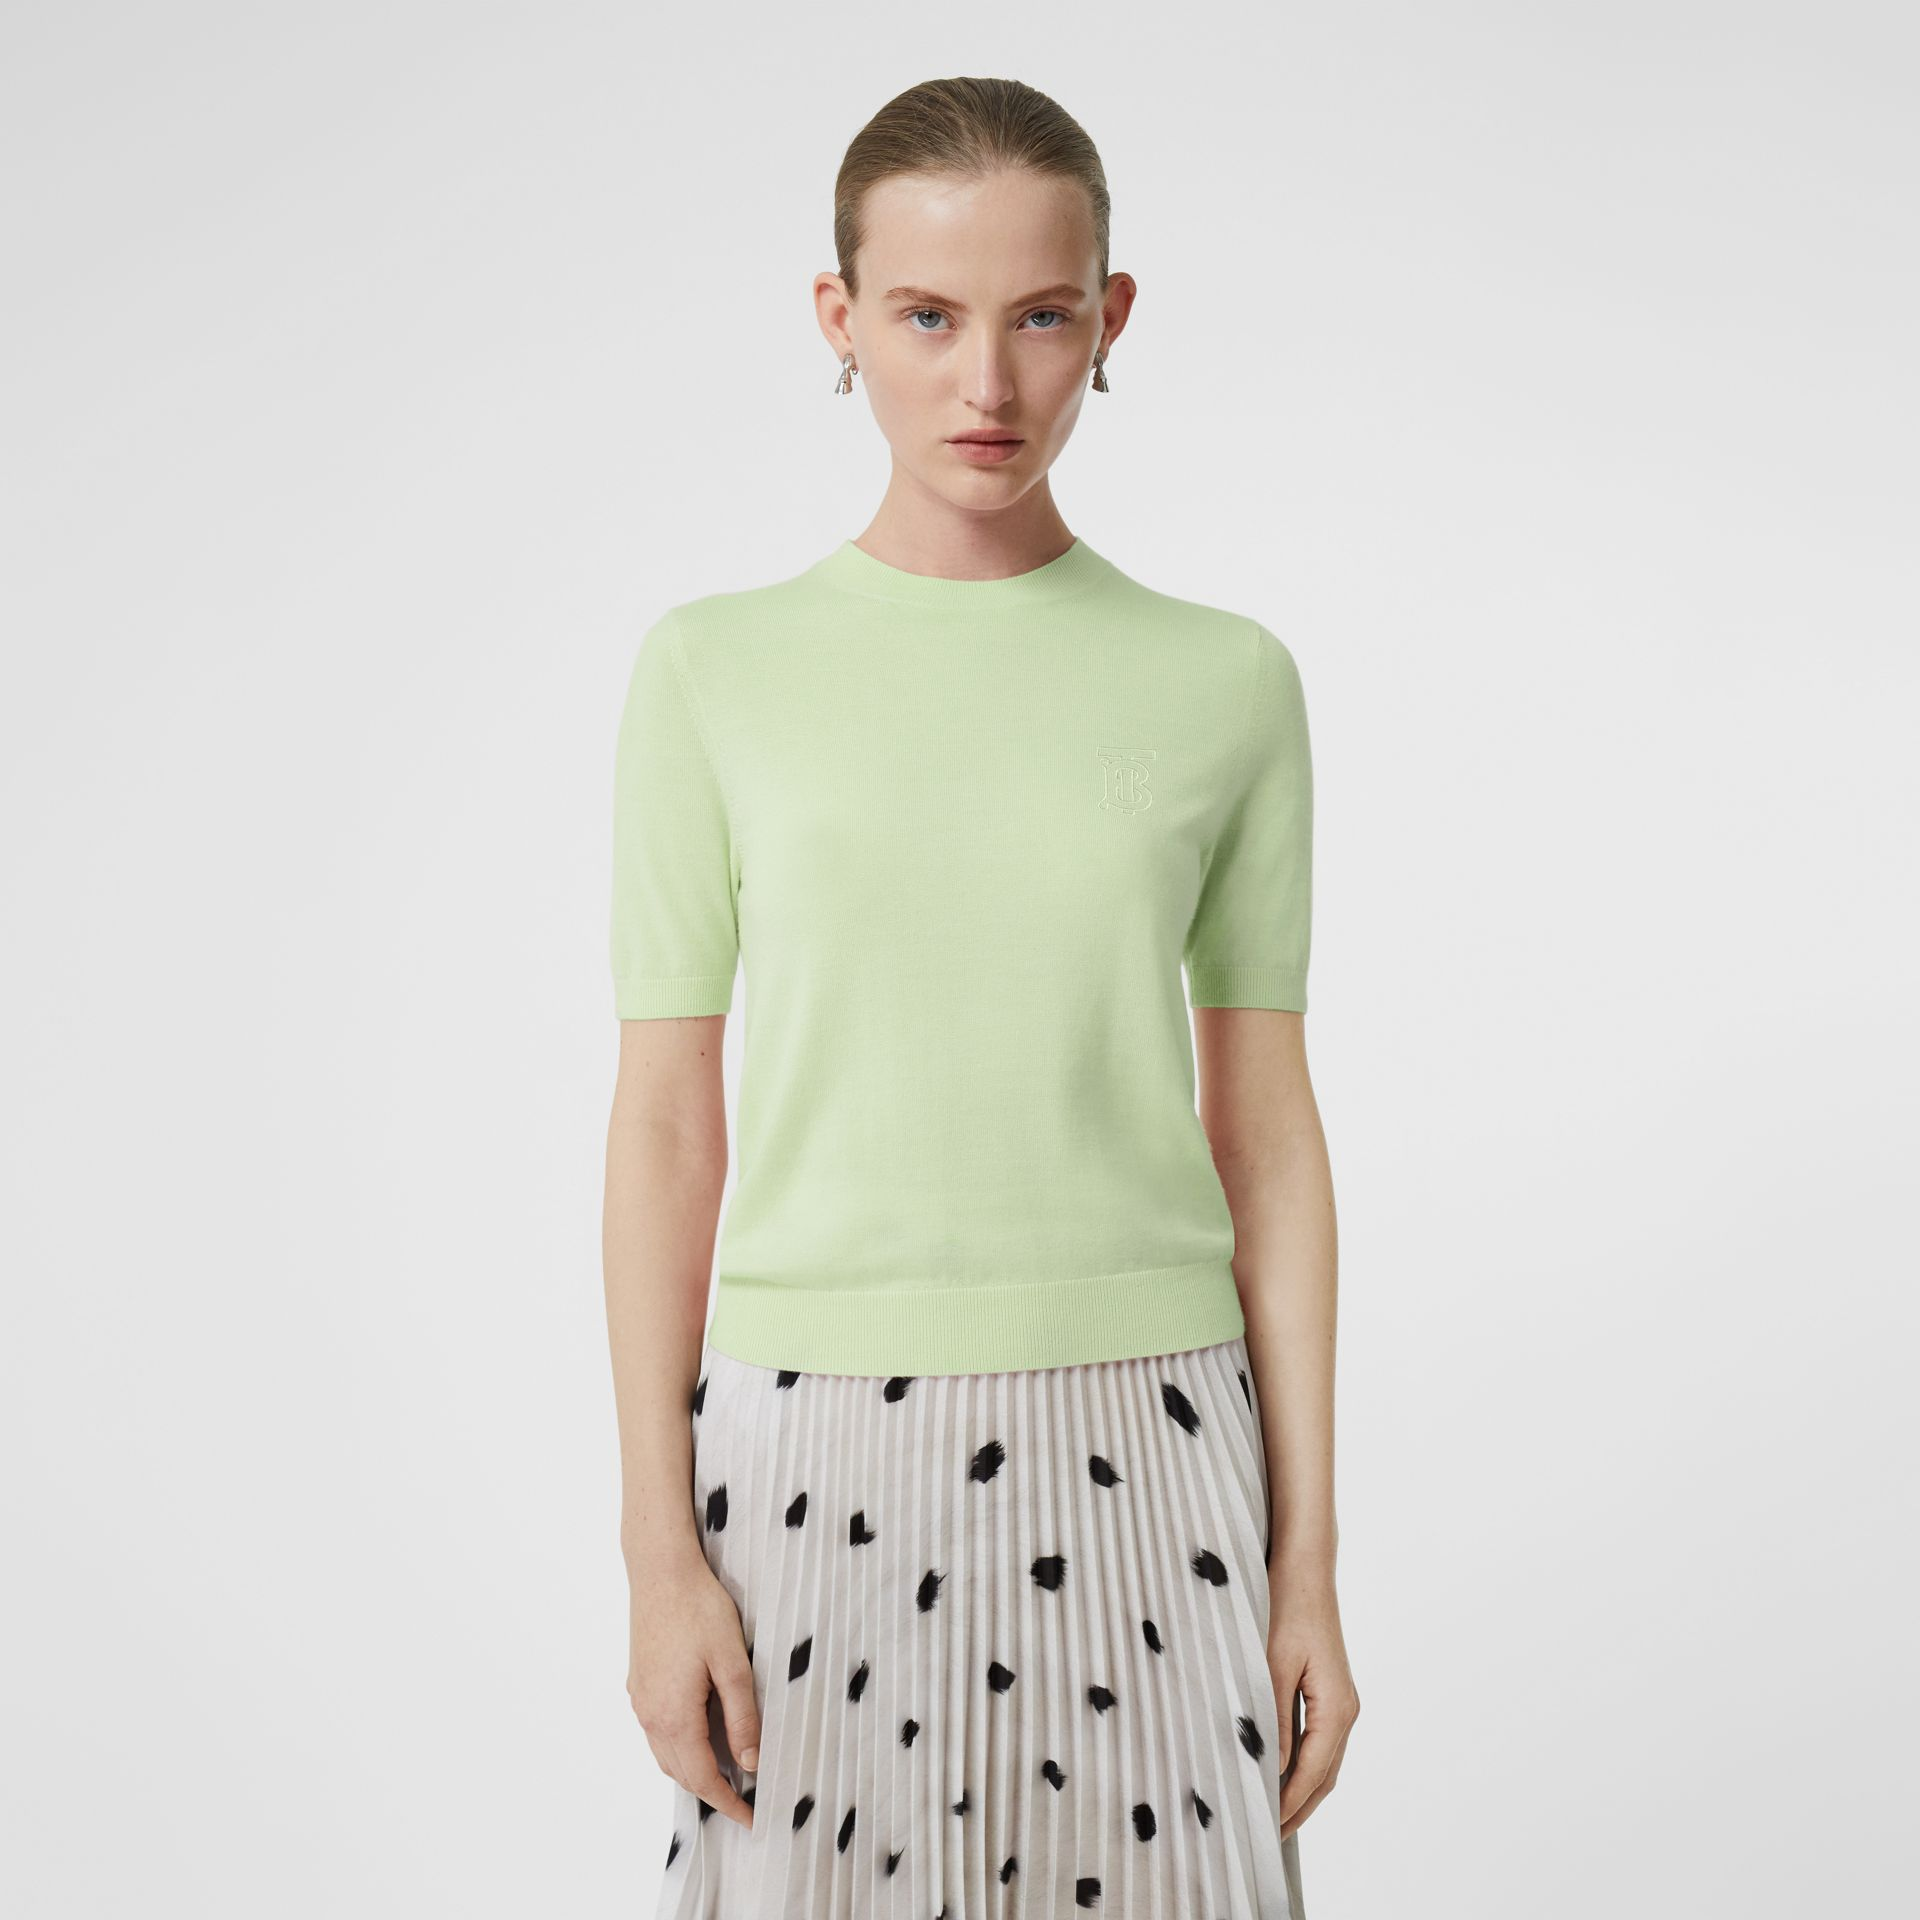 Monogram Motif Cashmere Top in Pistachio - Women | Burberry Singapore - gallery image 4